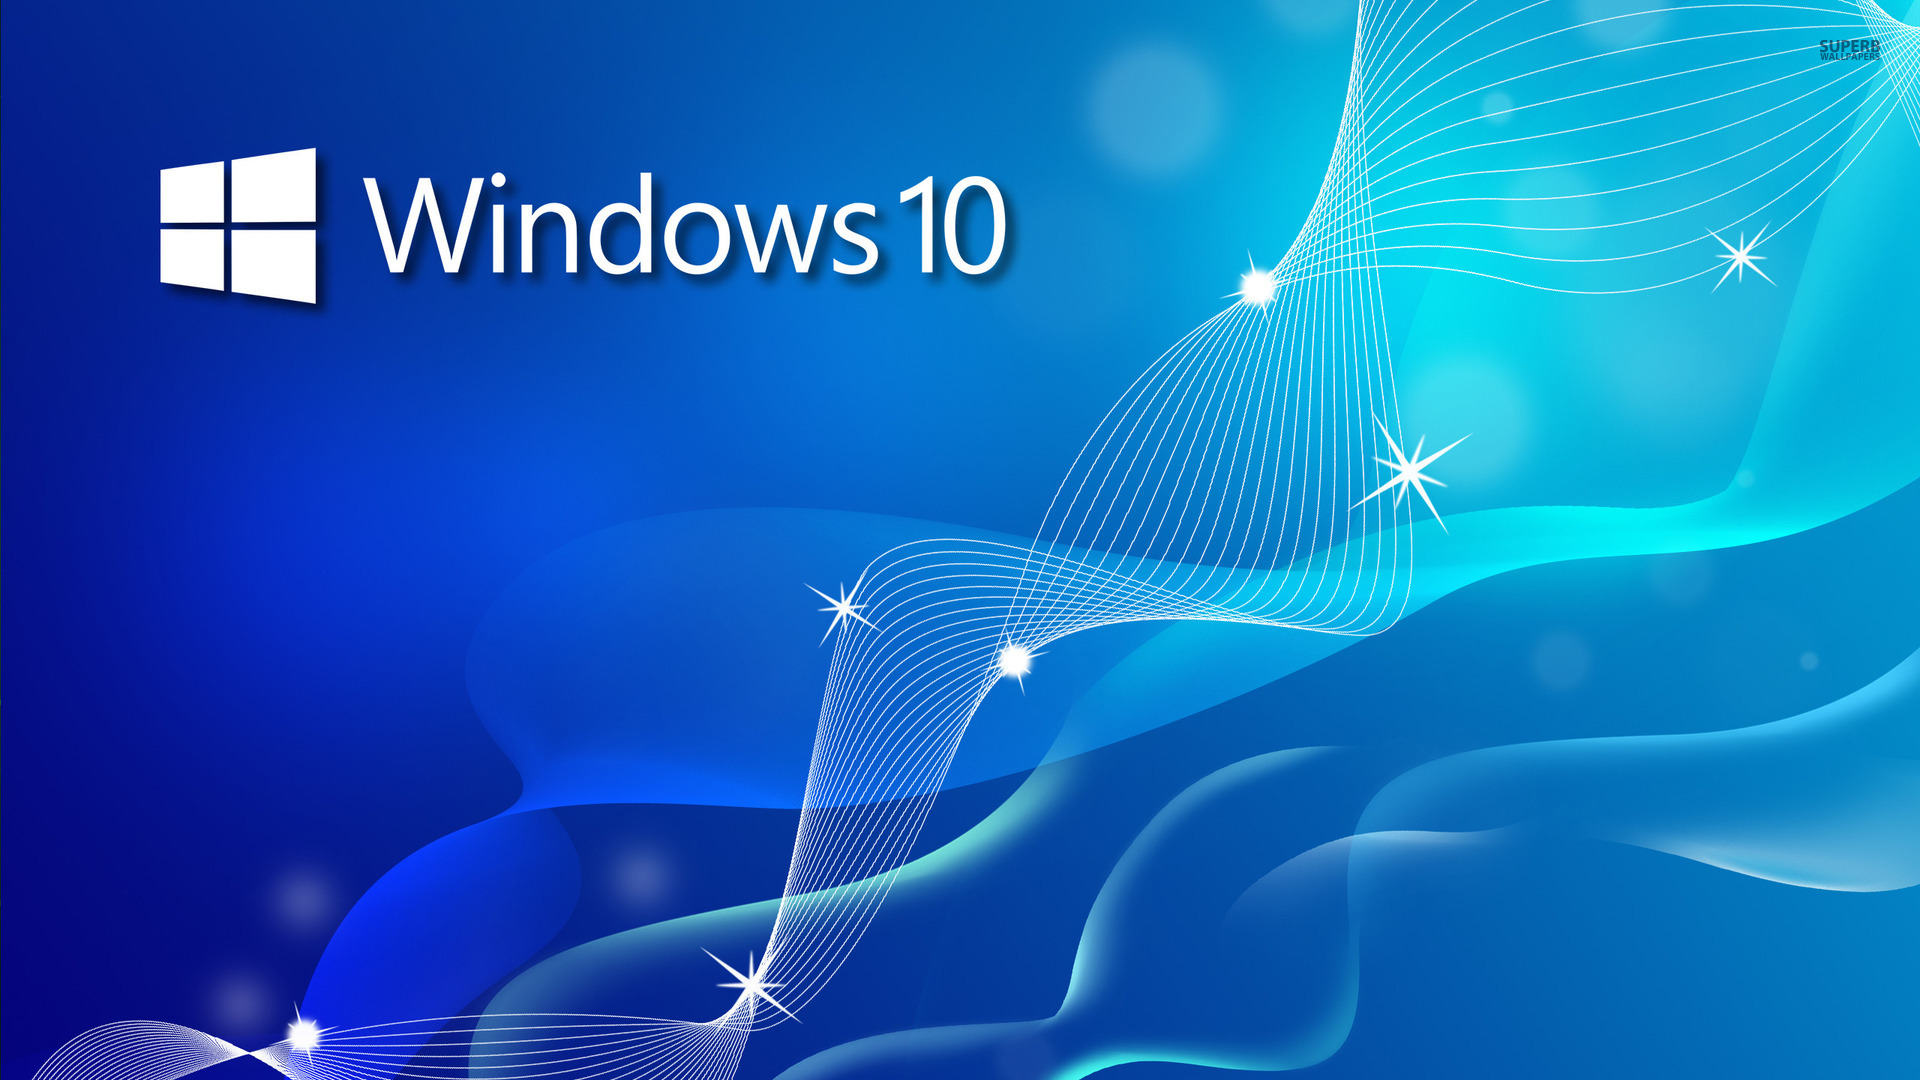 Windows 10 Wallpaper Download Full HD Pictures 1920x1080